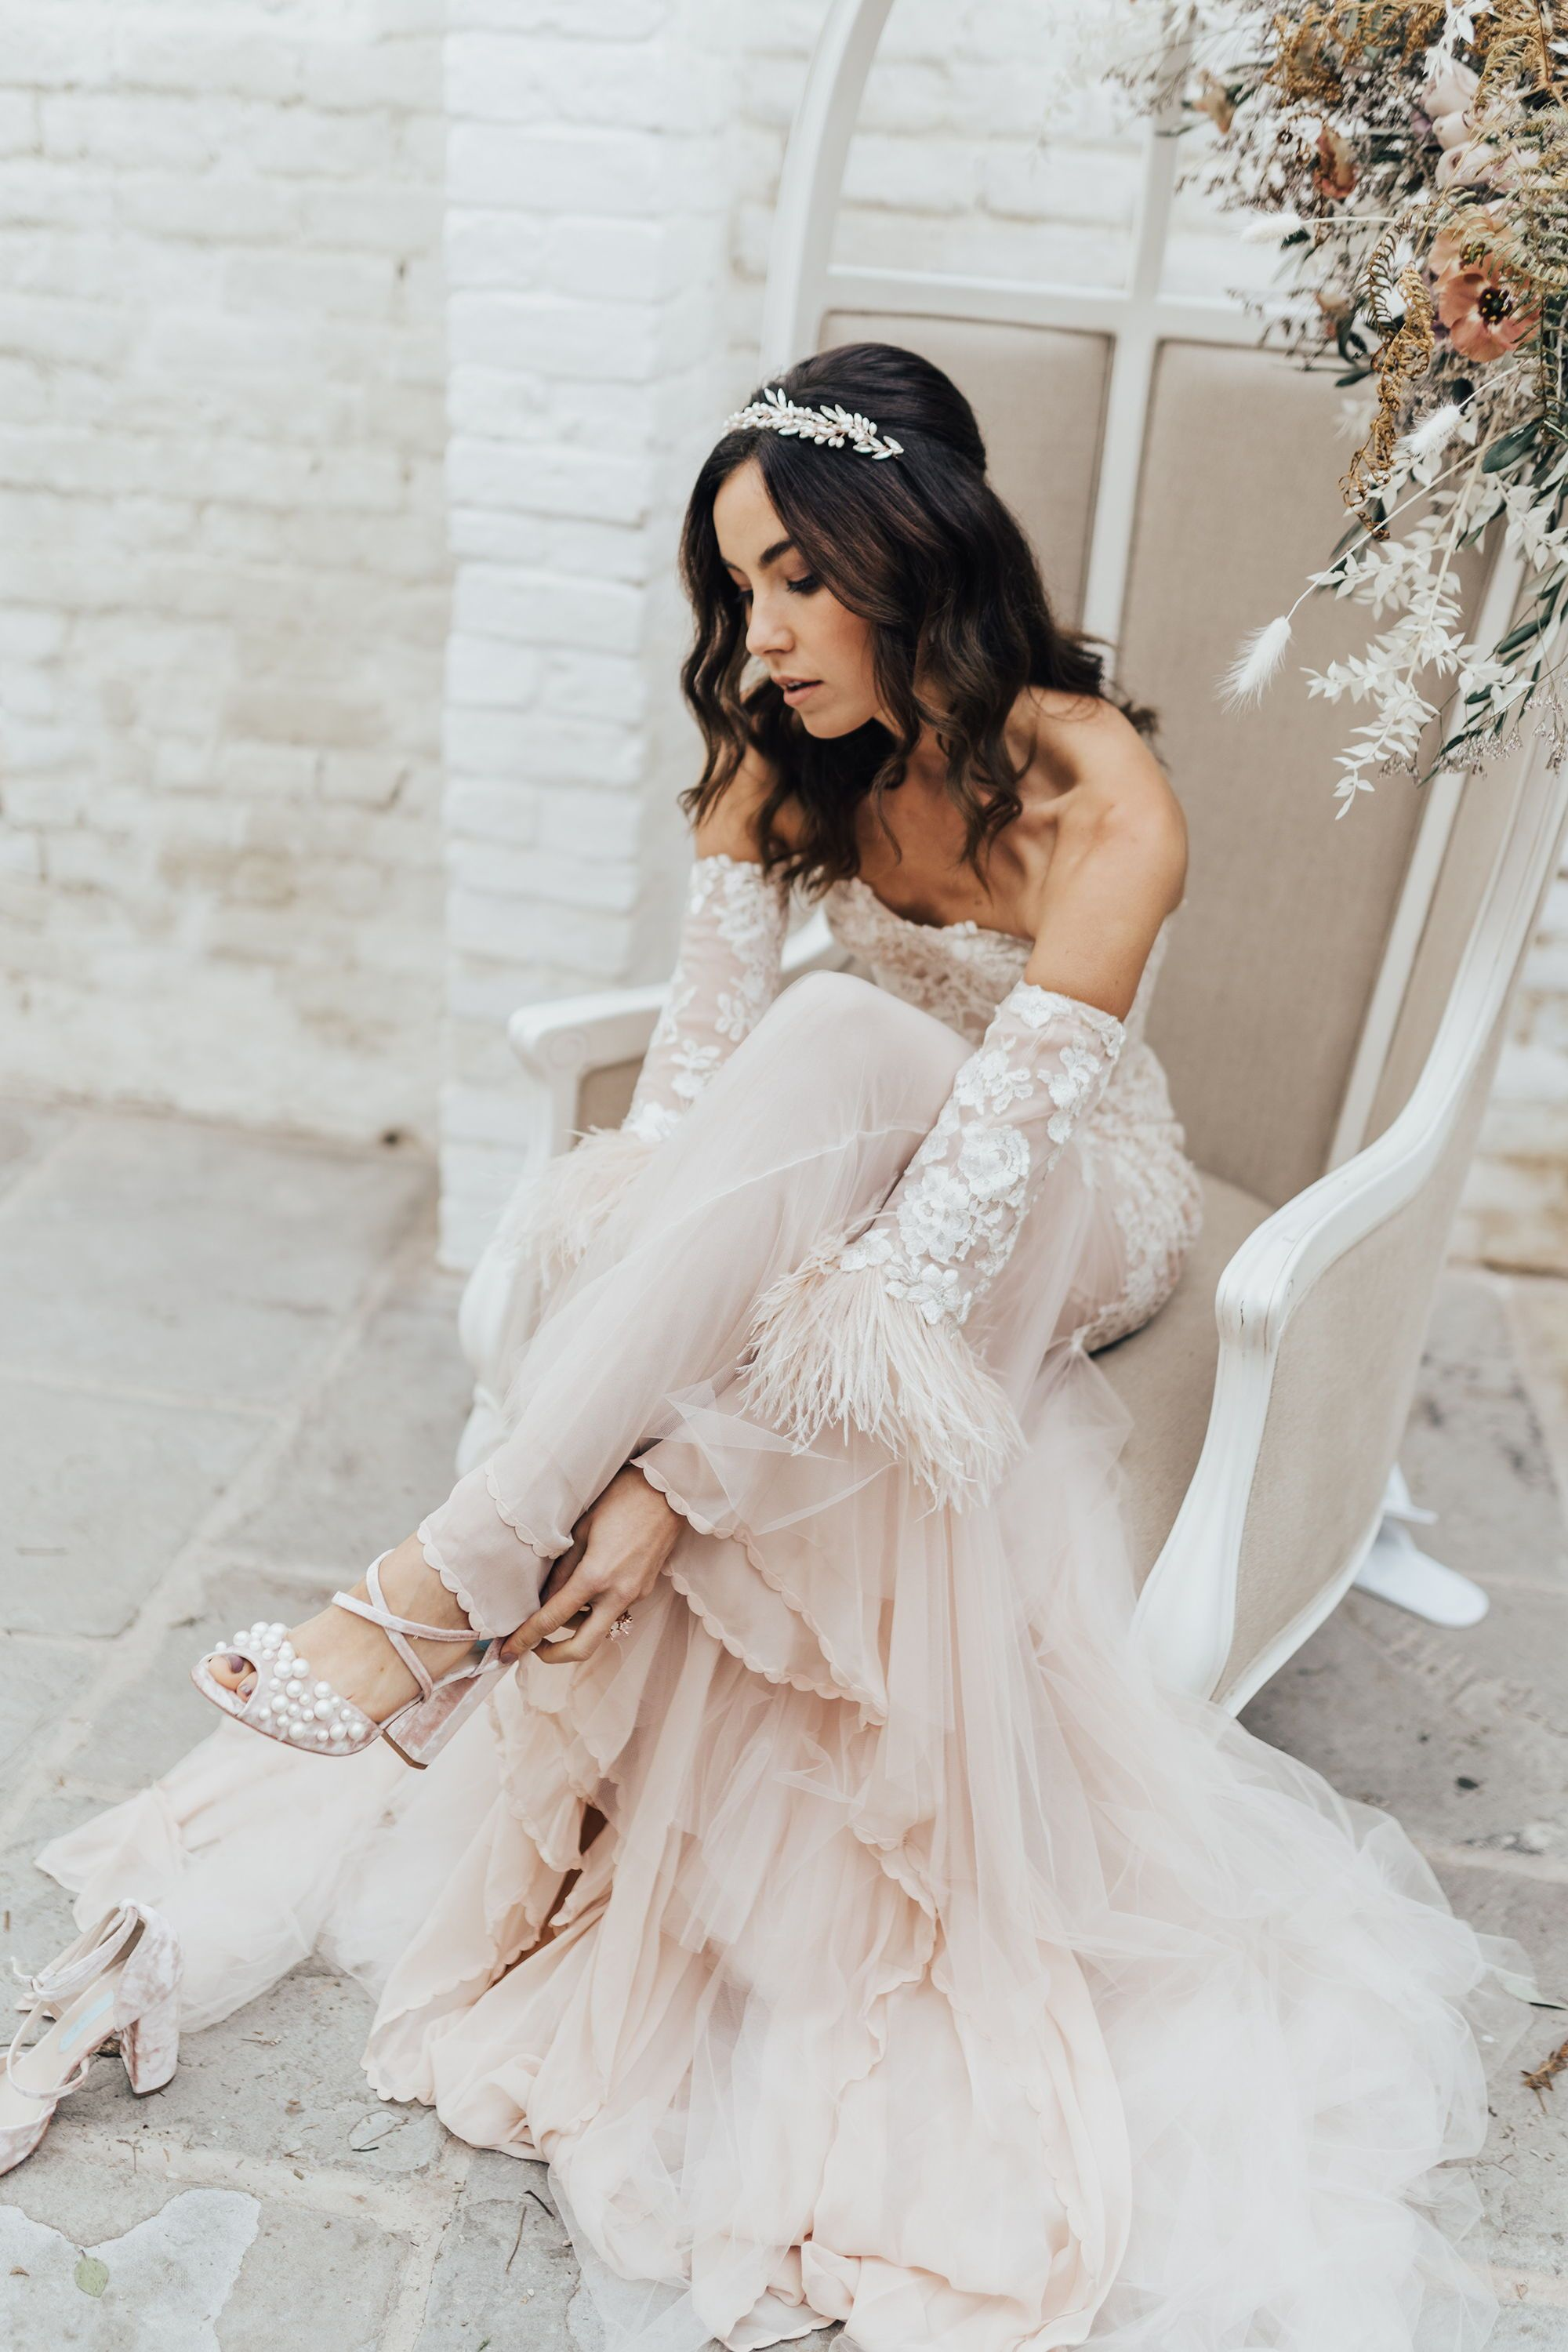 Bride With Pink Tulle Dress With Feathers And Blush Shoes With